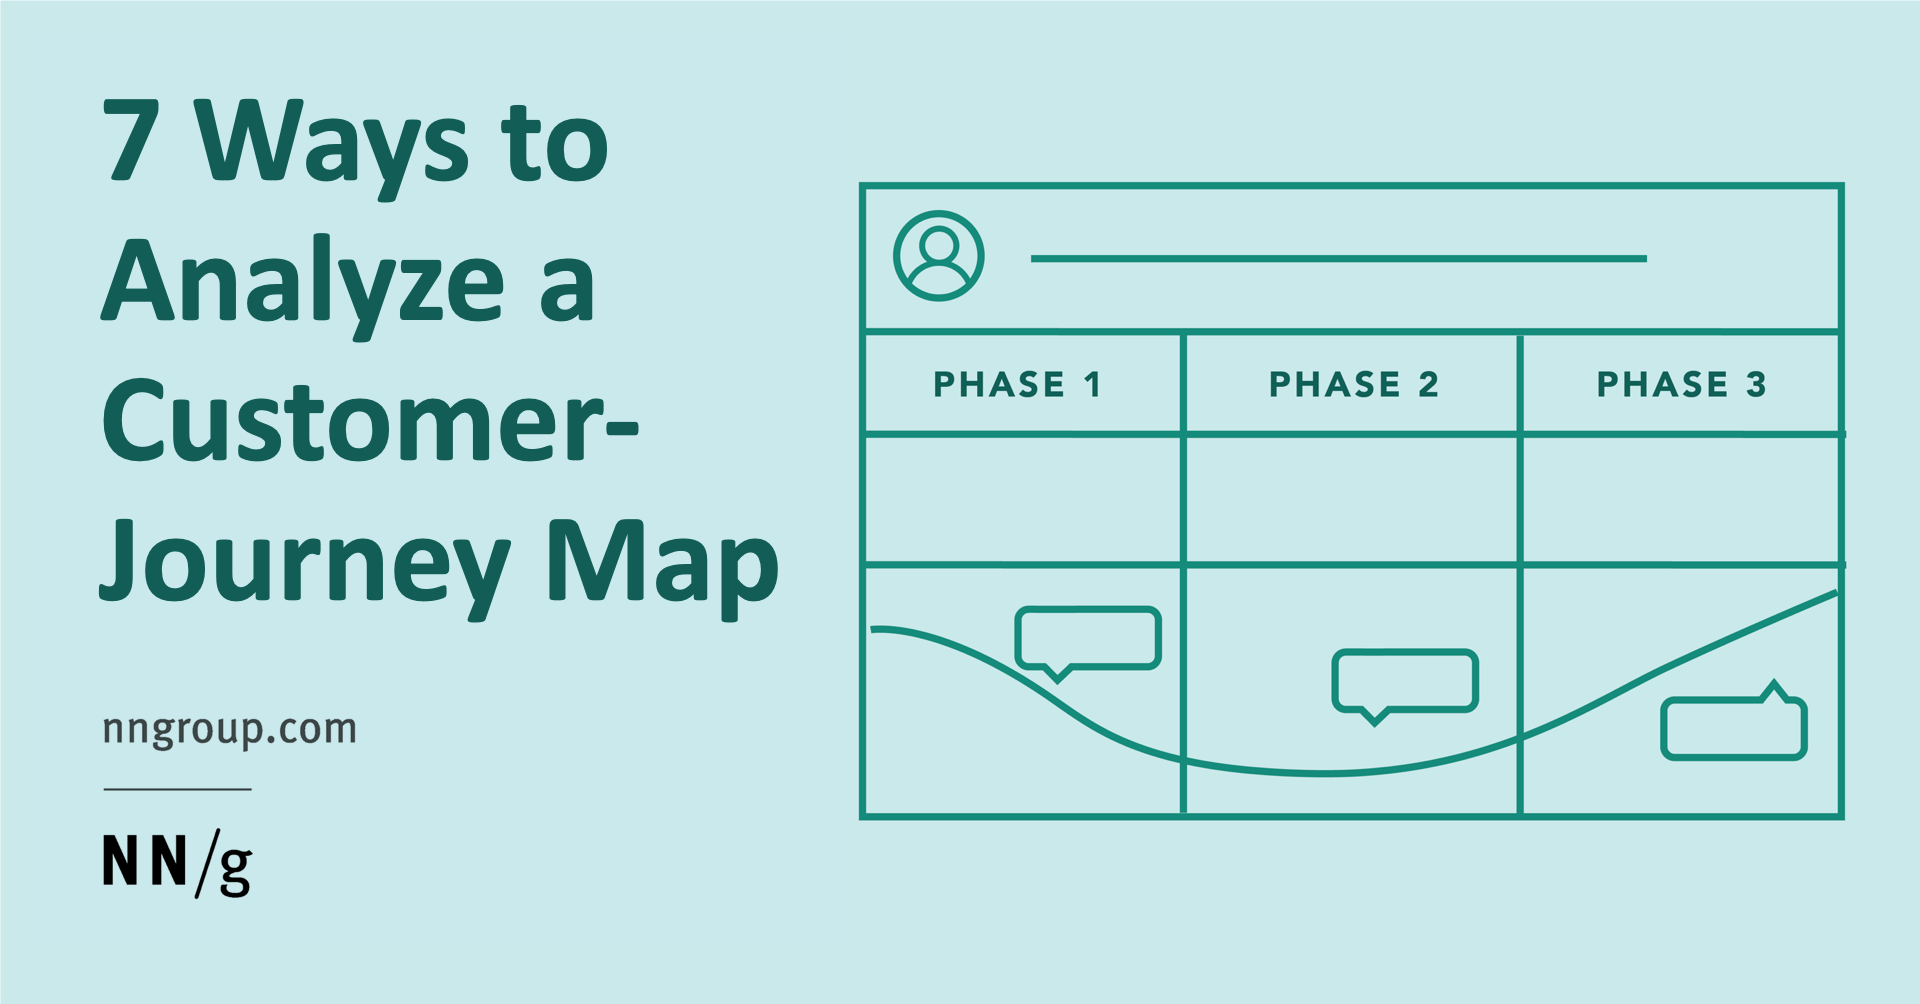 7 Ways to Analyze a Customer-Journey Map